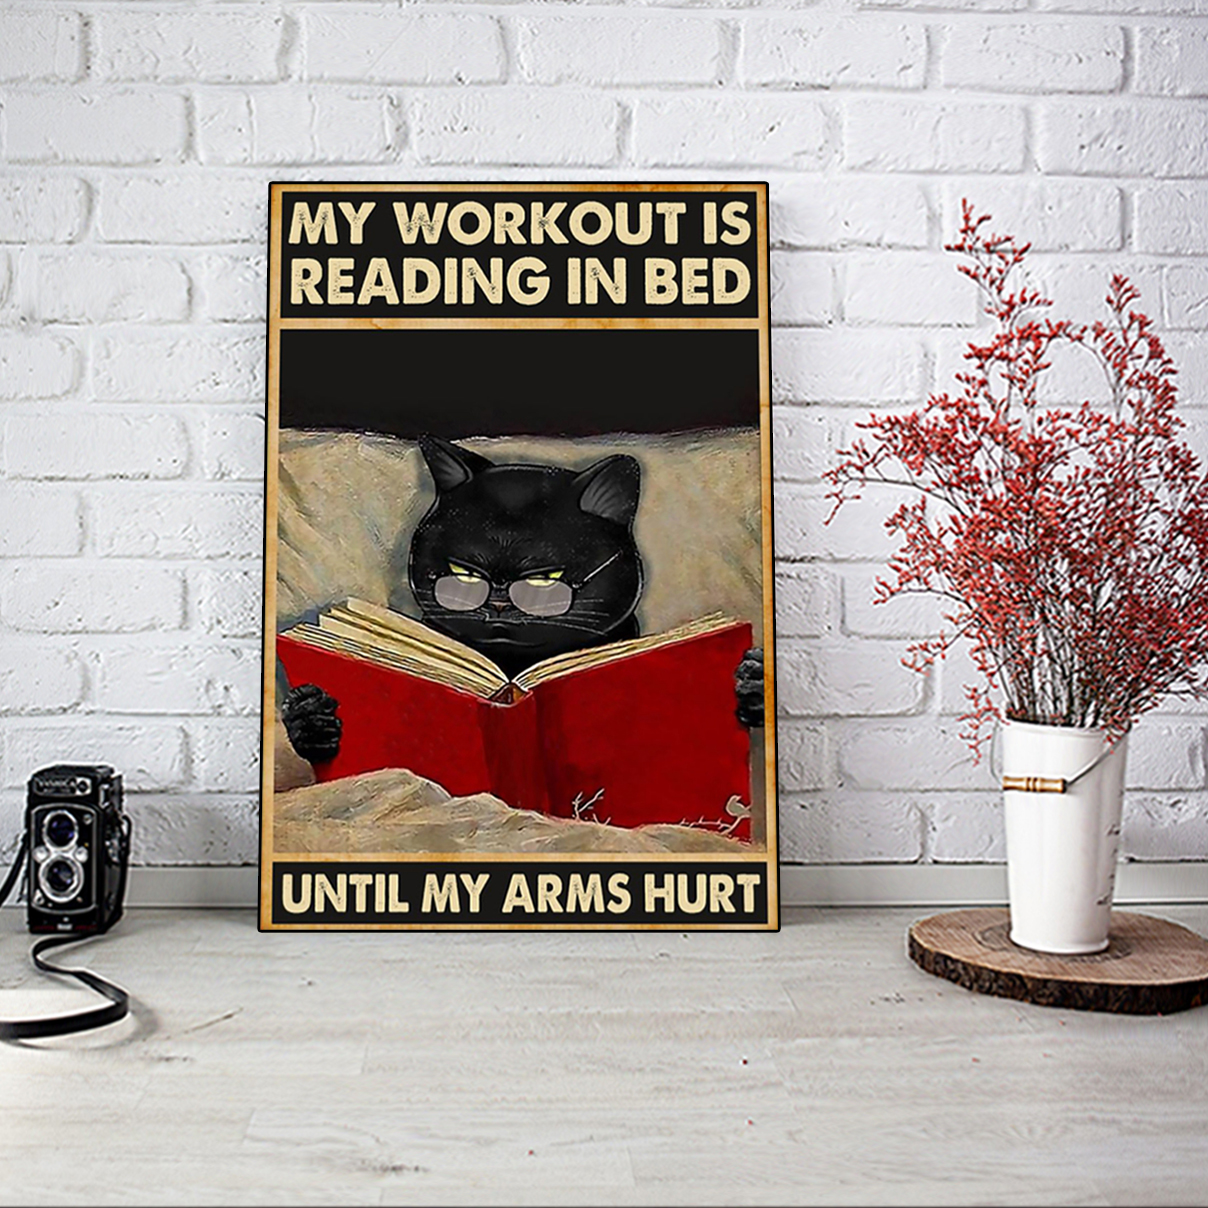 My workout is reading in bed until my arms hurt poster A2